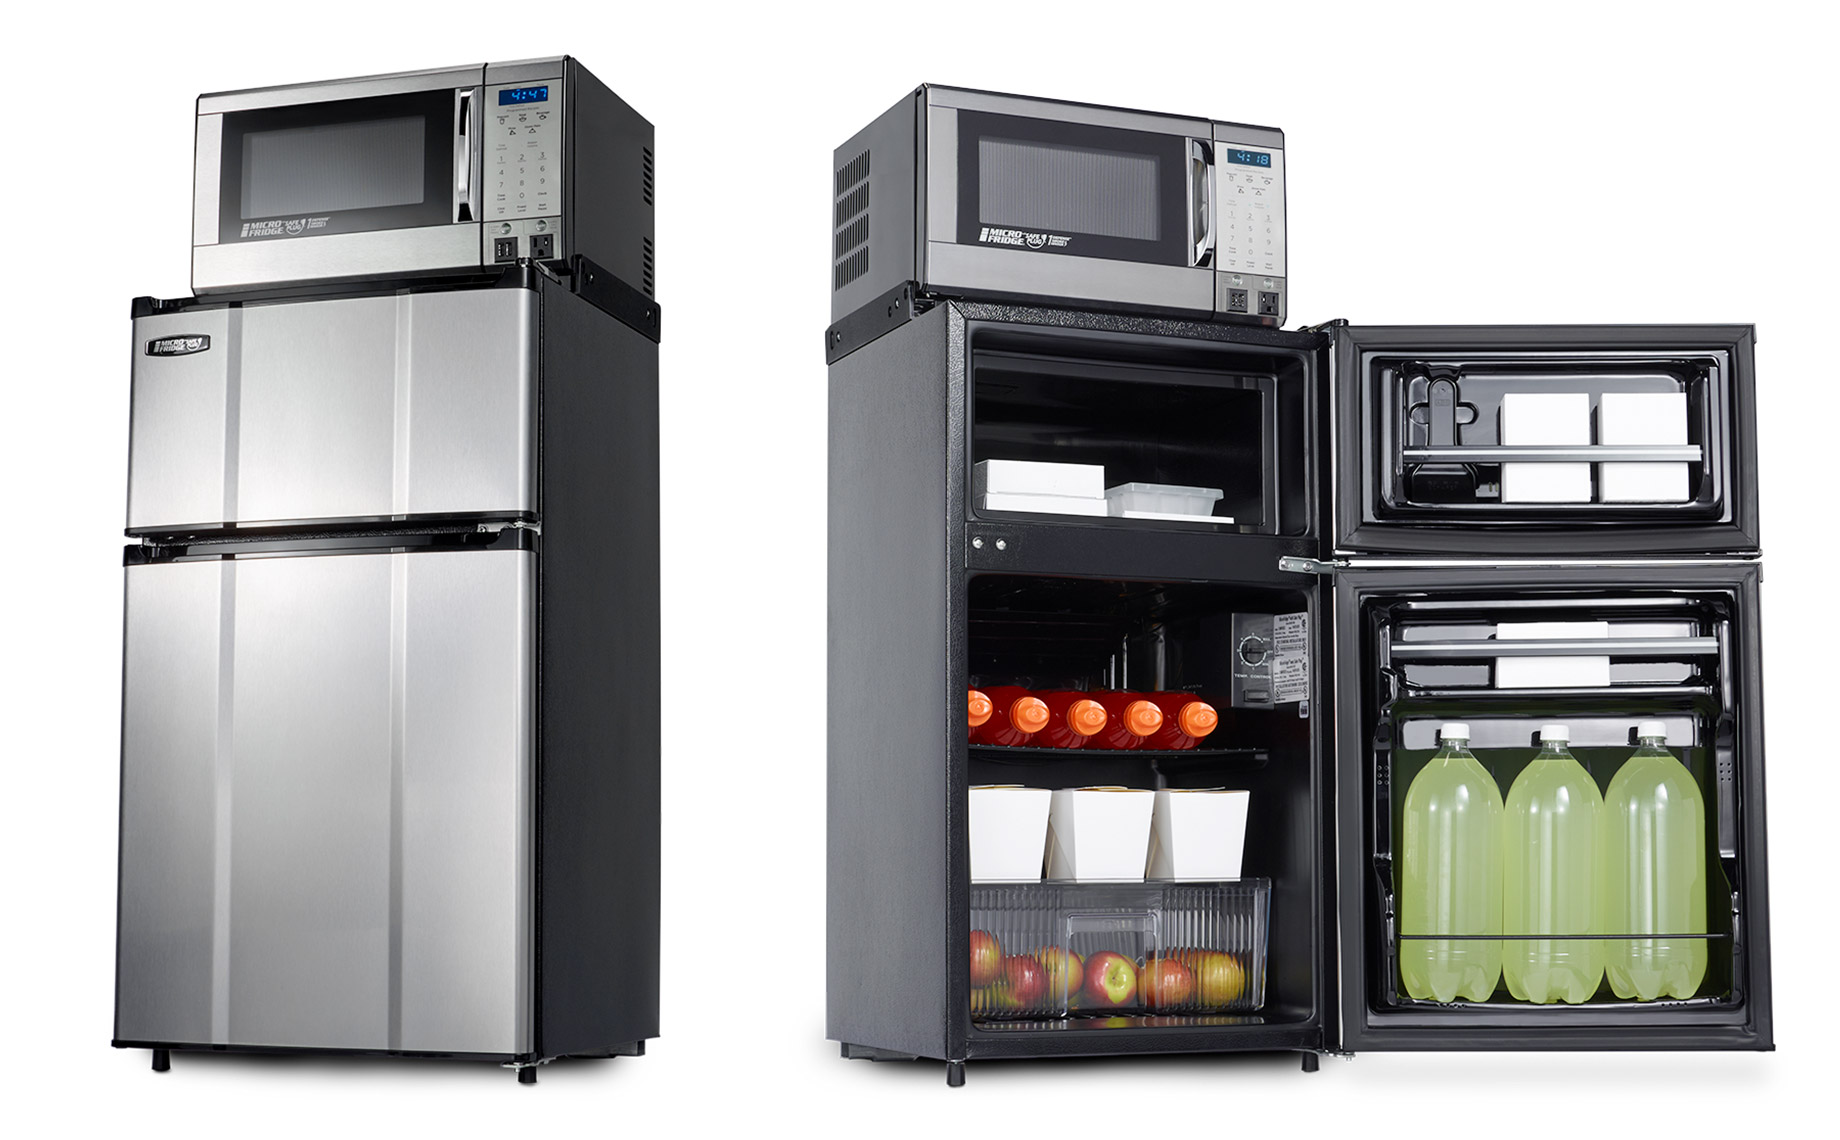 Micro Fridge & Microwave Product Photography